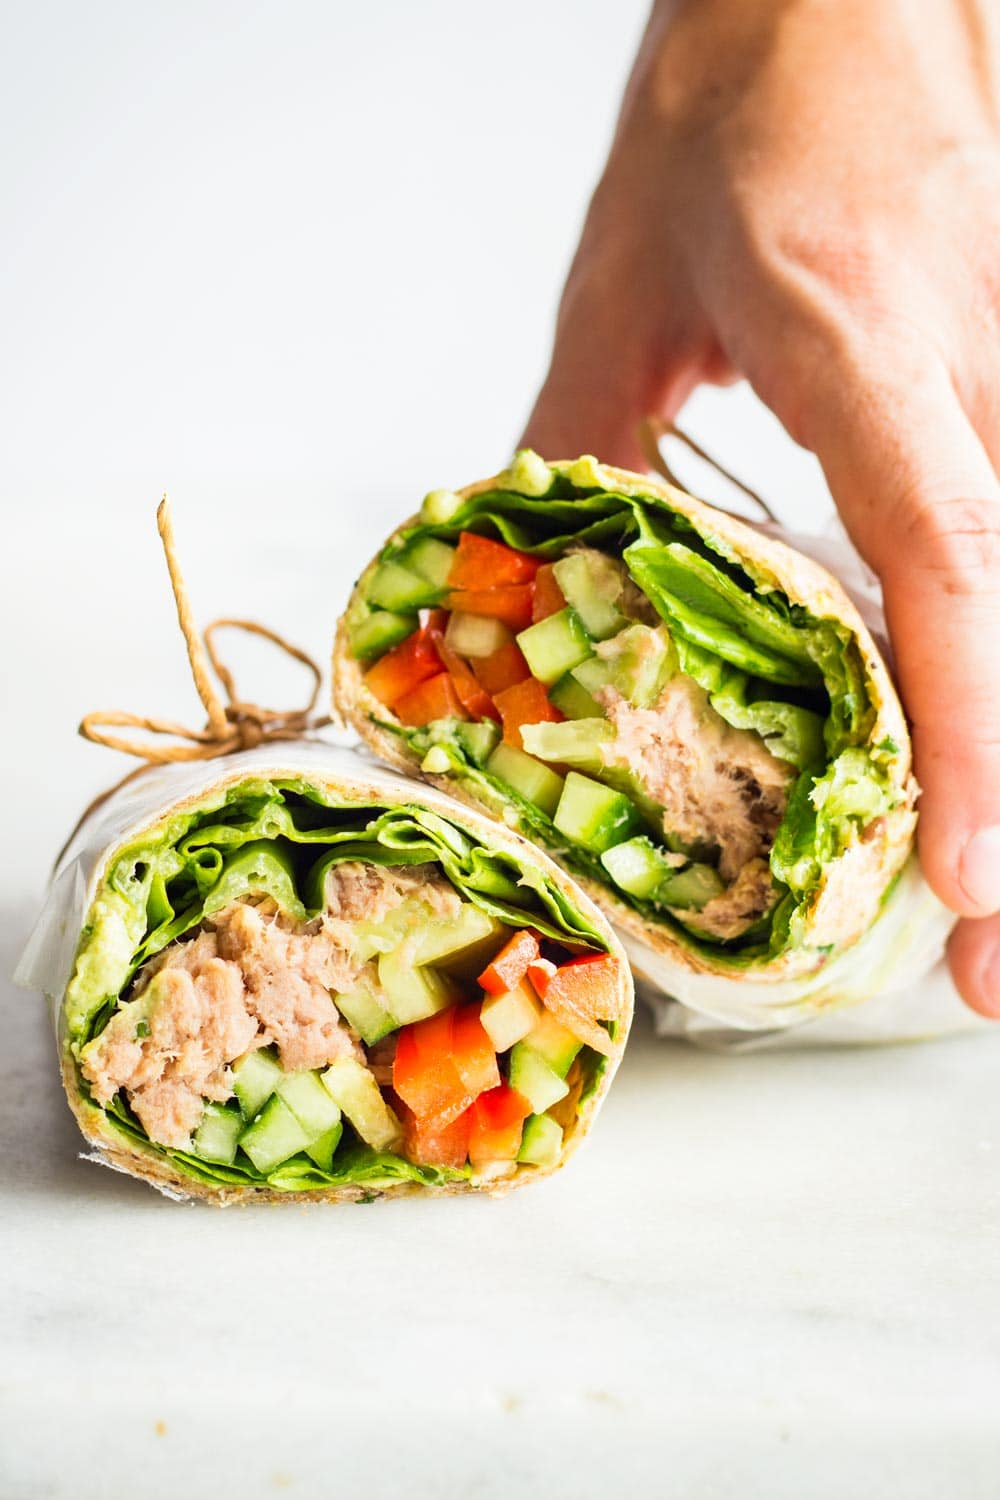 Hand holding a Healthy Tuna Wrap cut in two halves tied with jute twine.